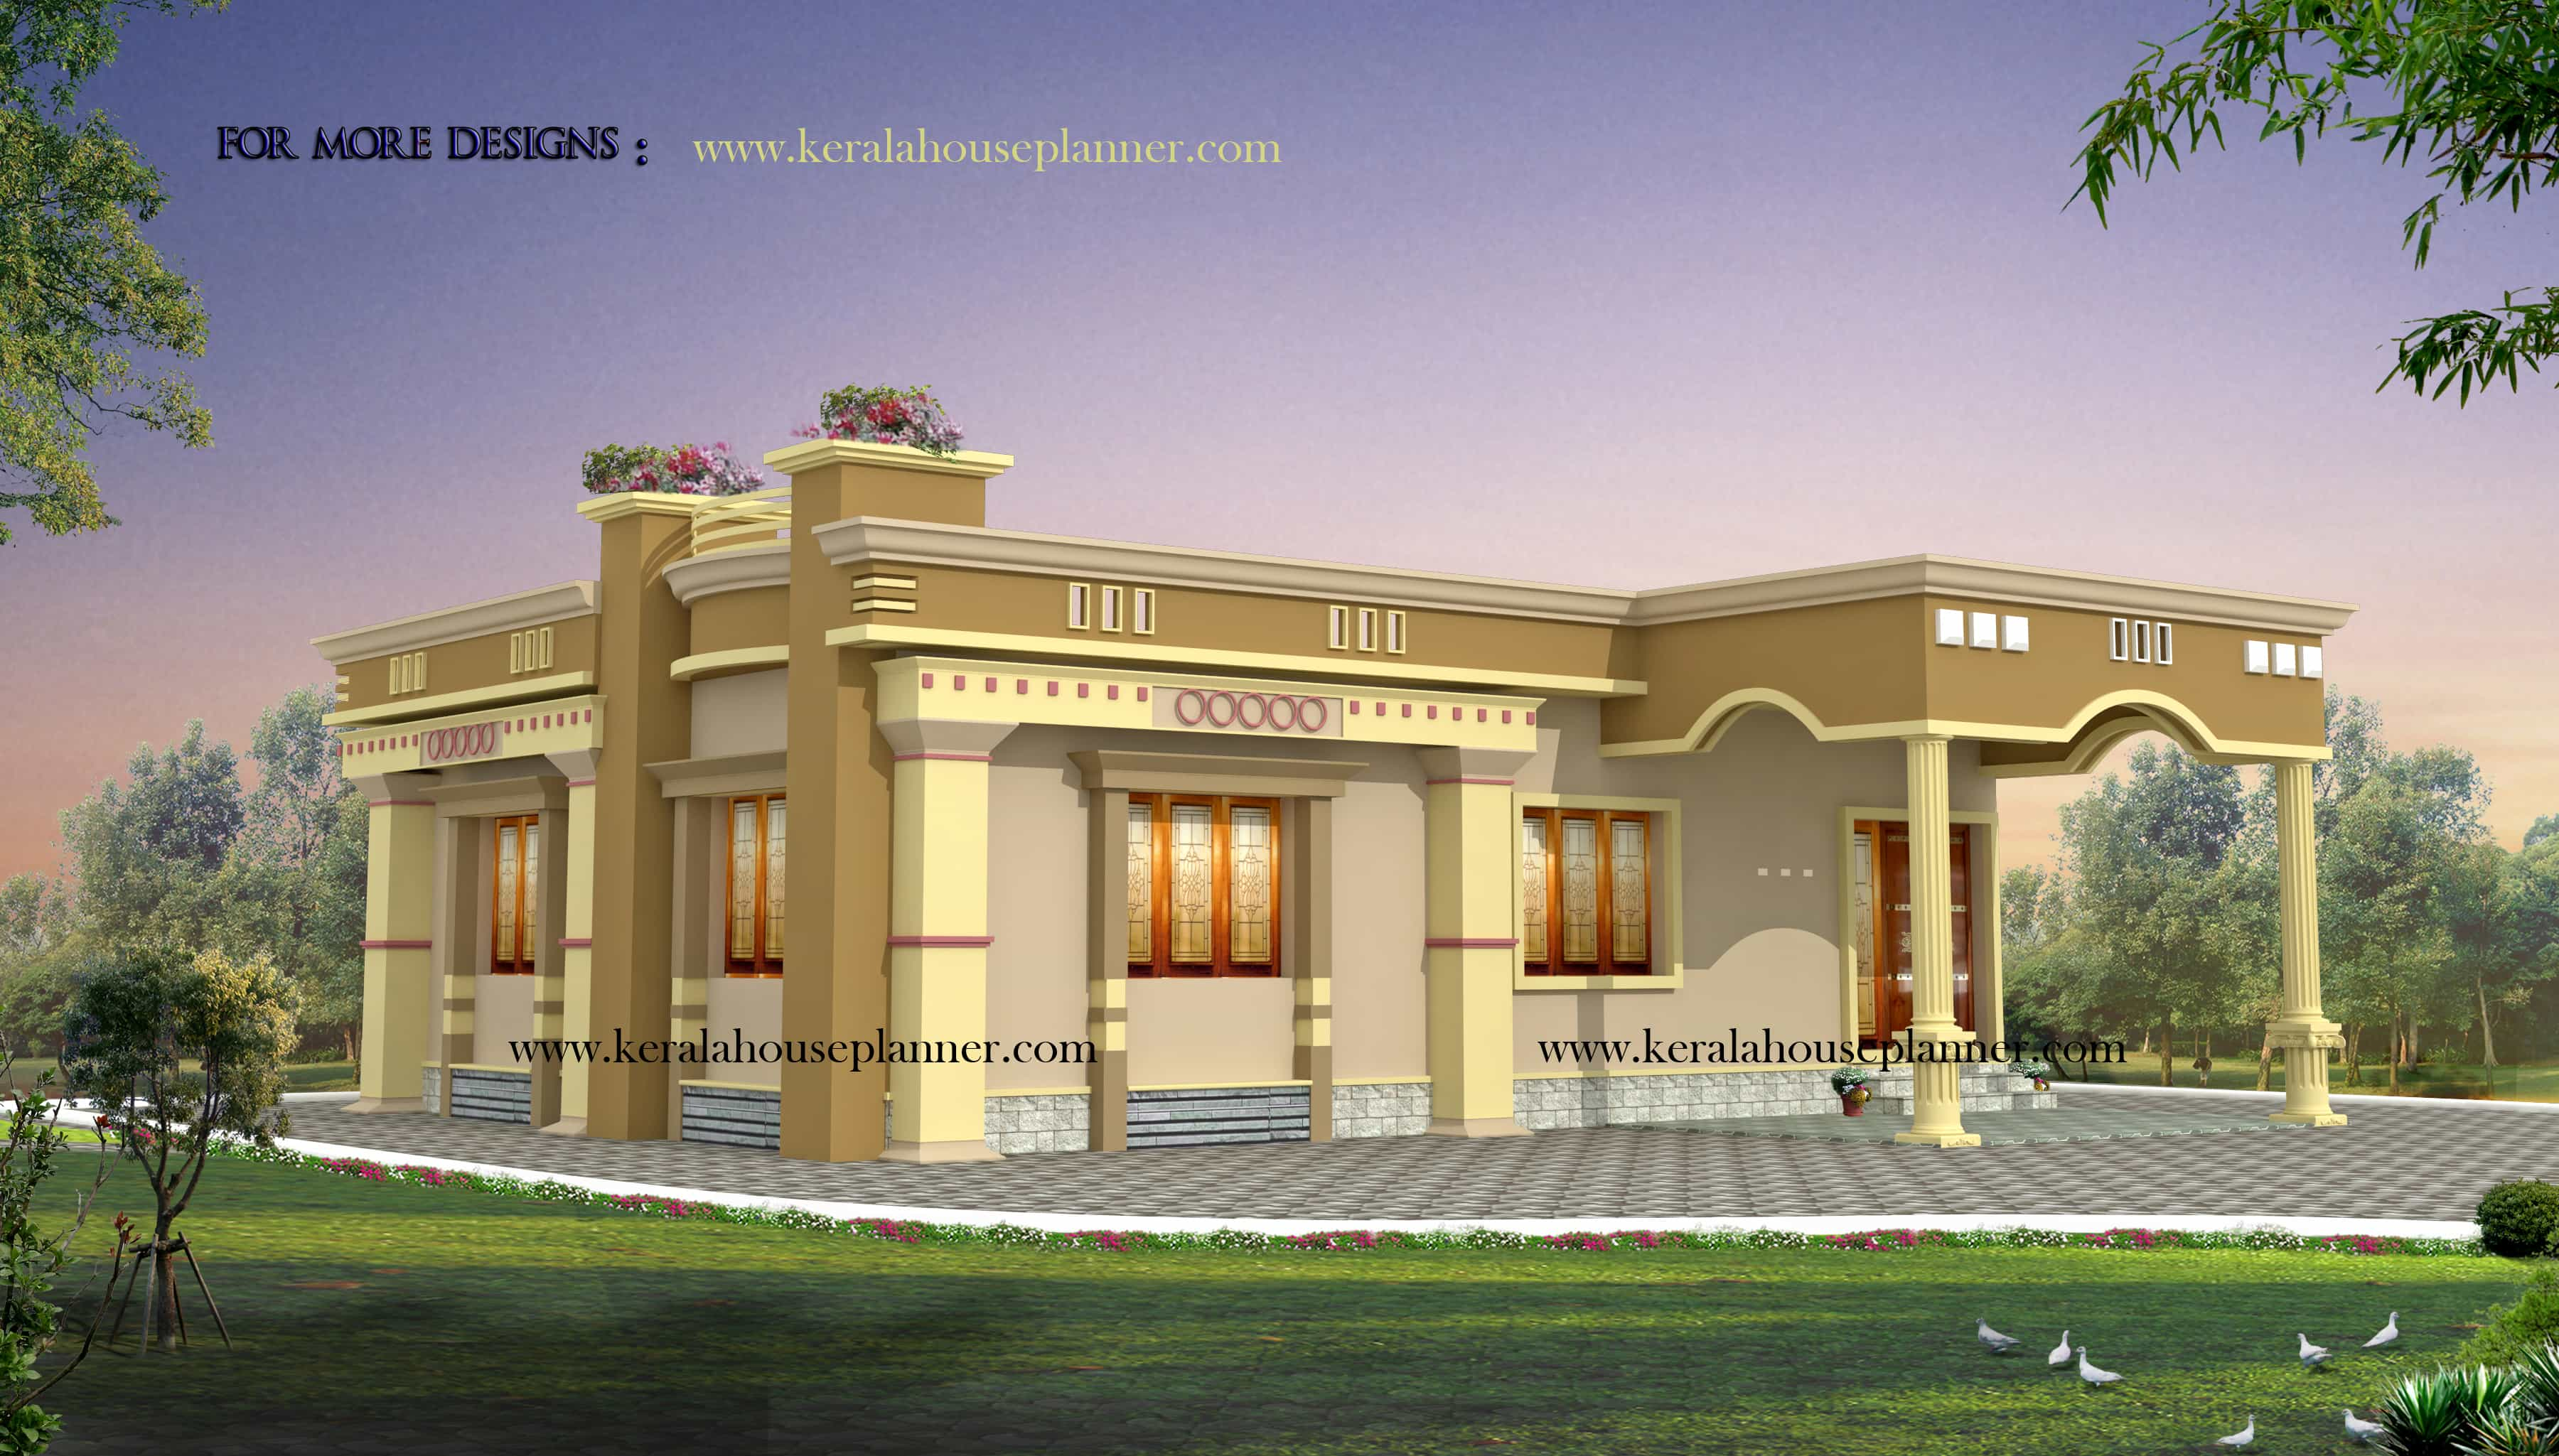 Kerala house plans 1200 sq ft with photos khp for Kerala home plans